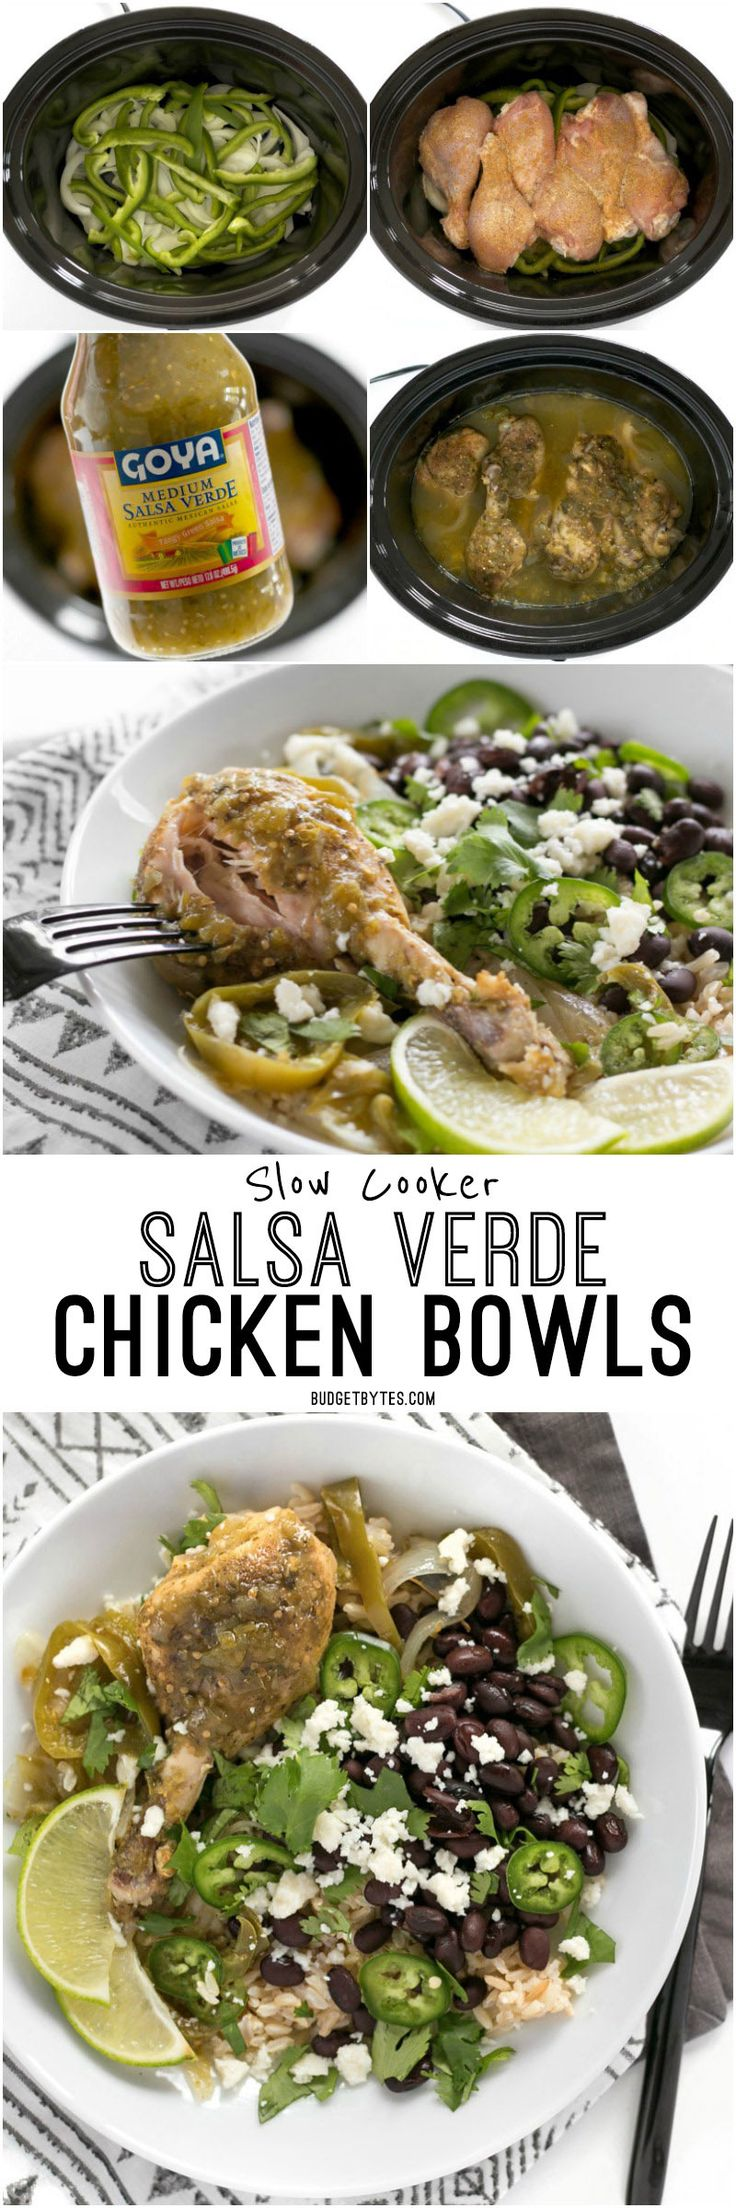 Slow Cooker Salsa Verde Chicken is a fast, easy, and flavorful dinner full of southwest flavors. @budgetbytes